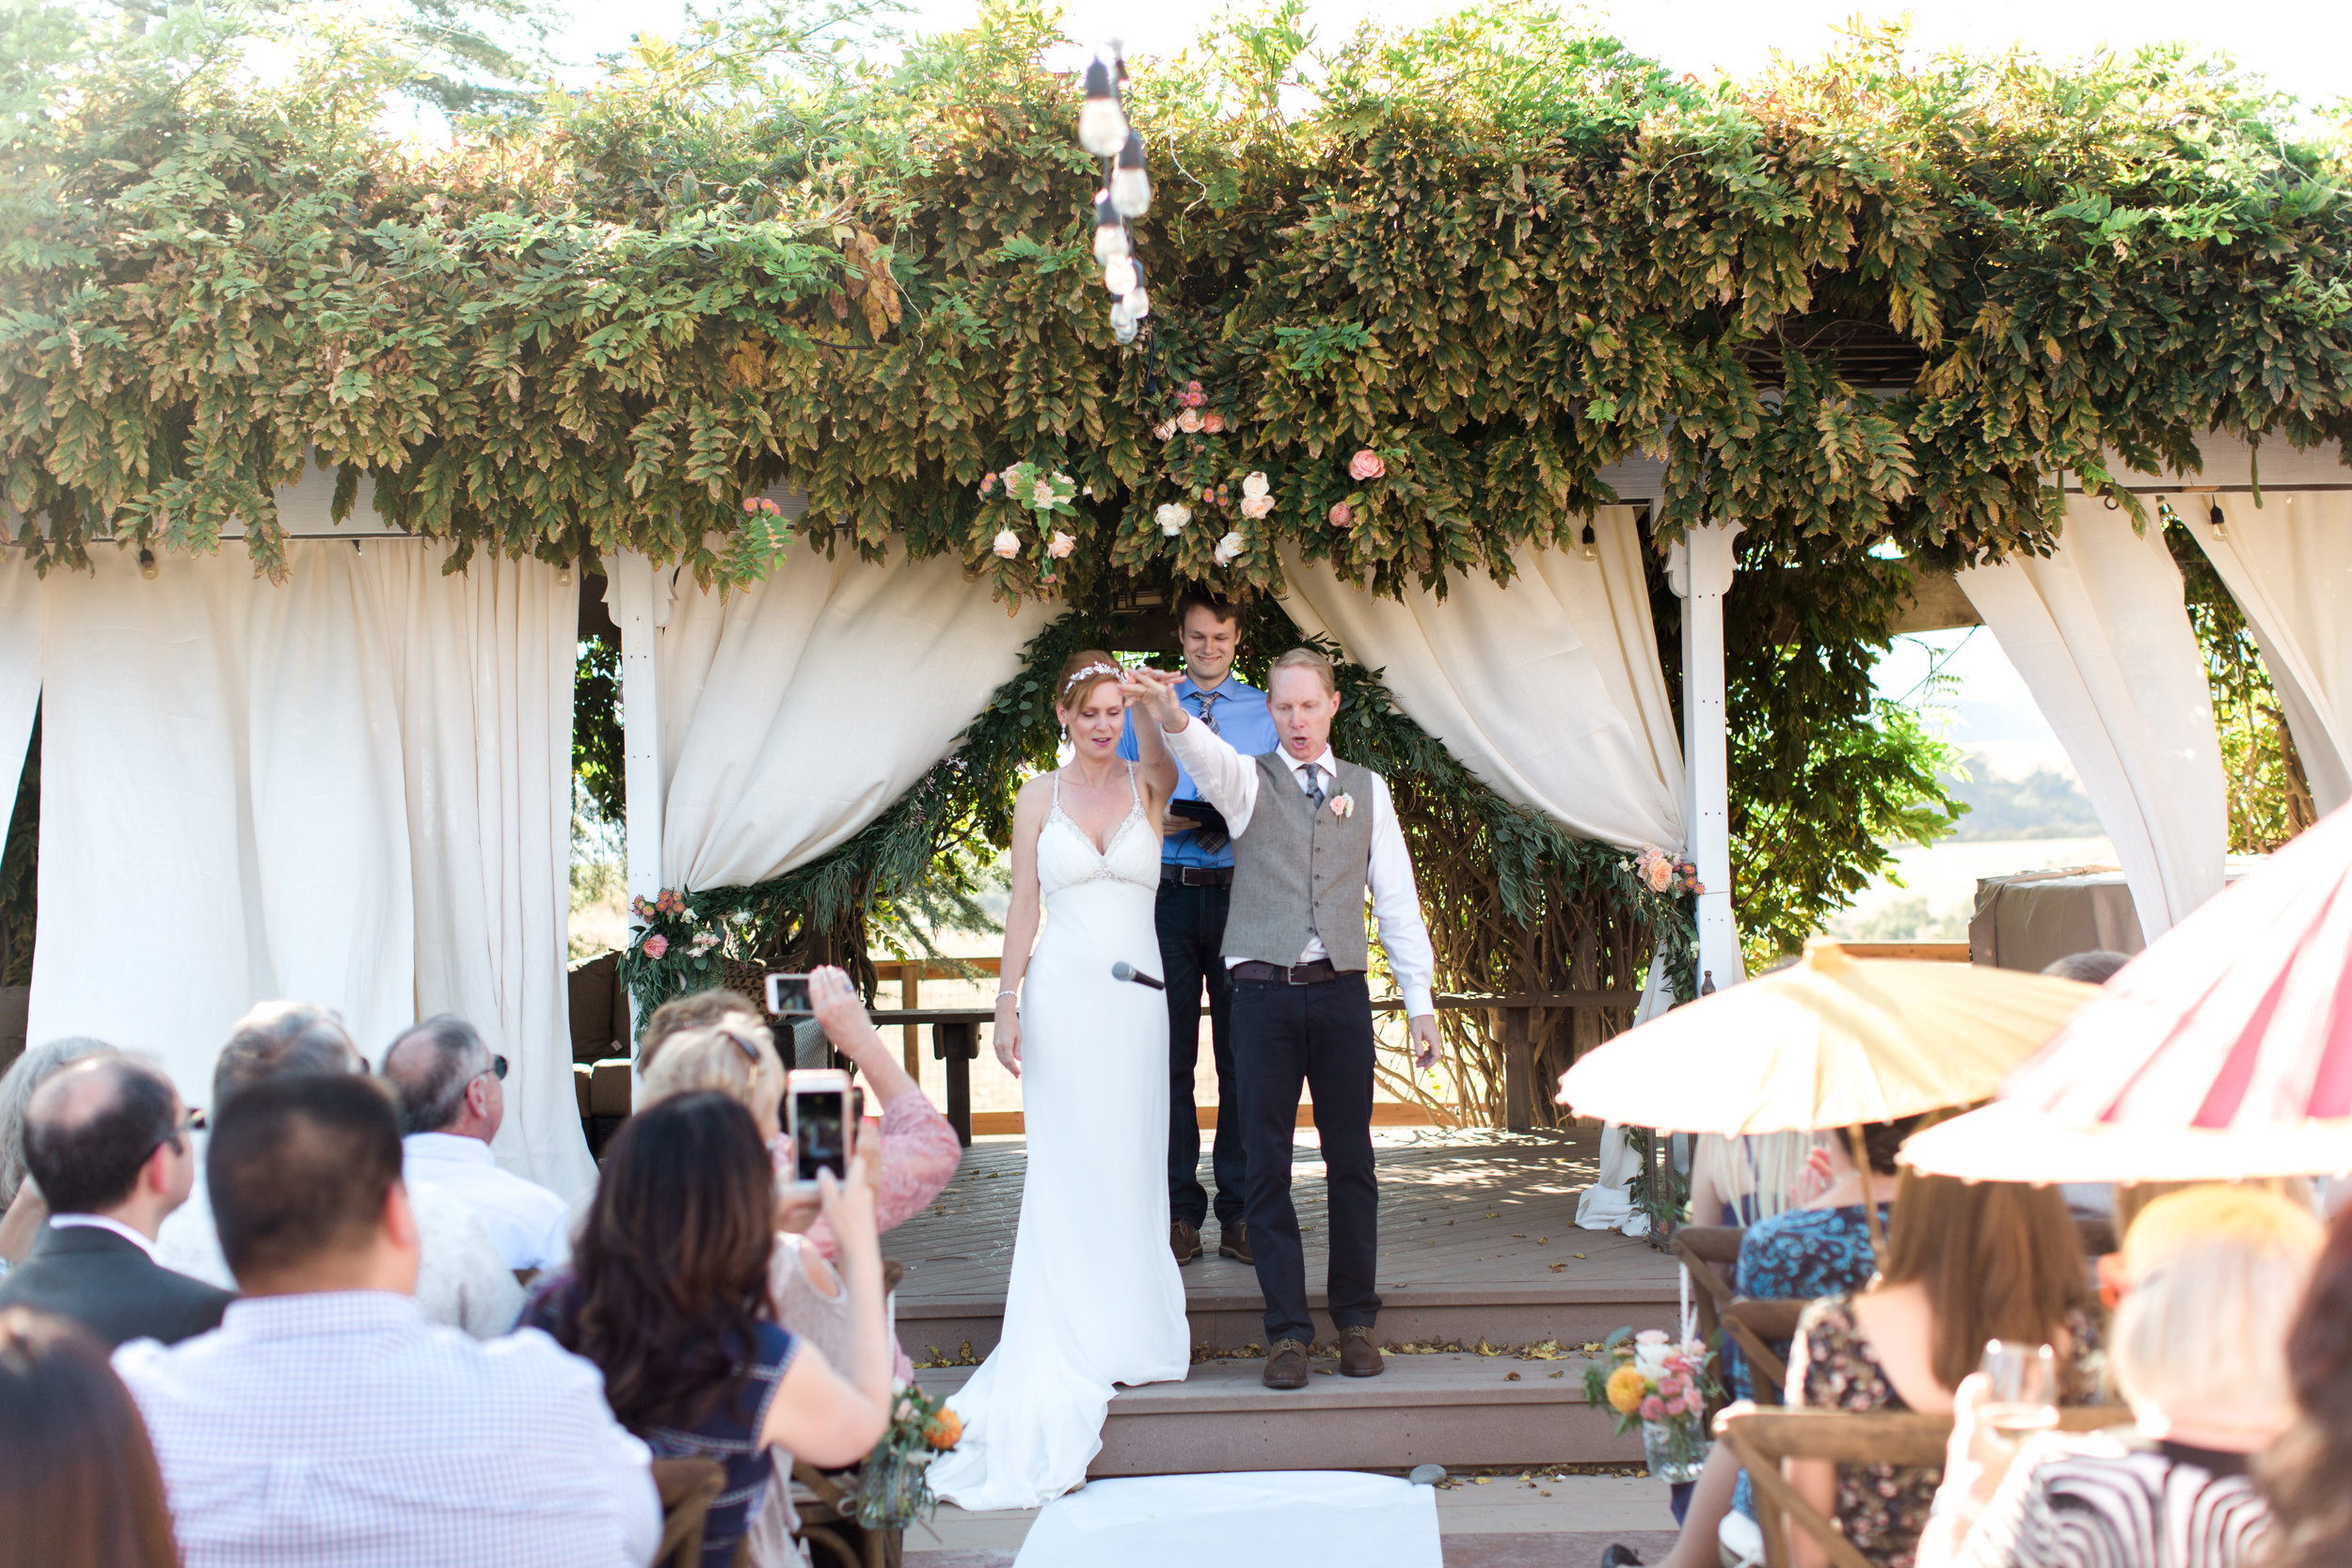 intimate-backyard-wedding-sonoma-california-19.jpg